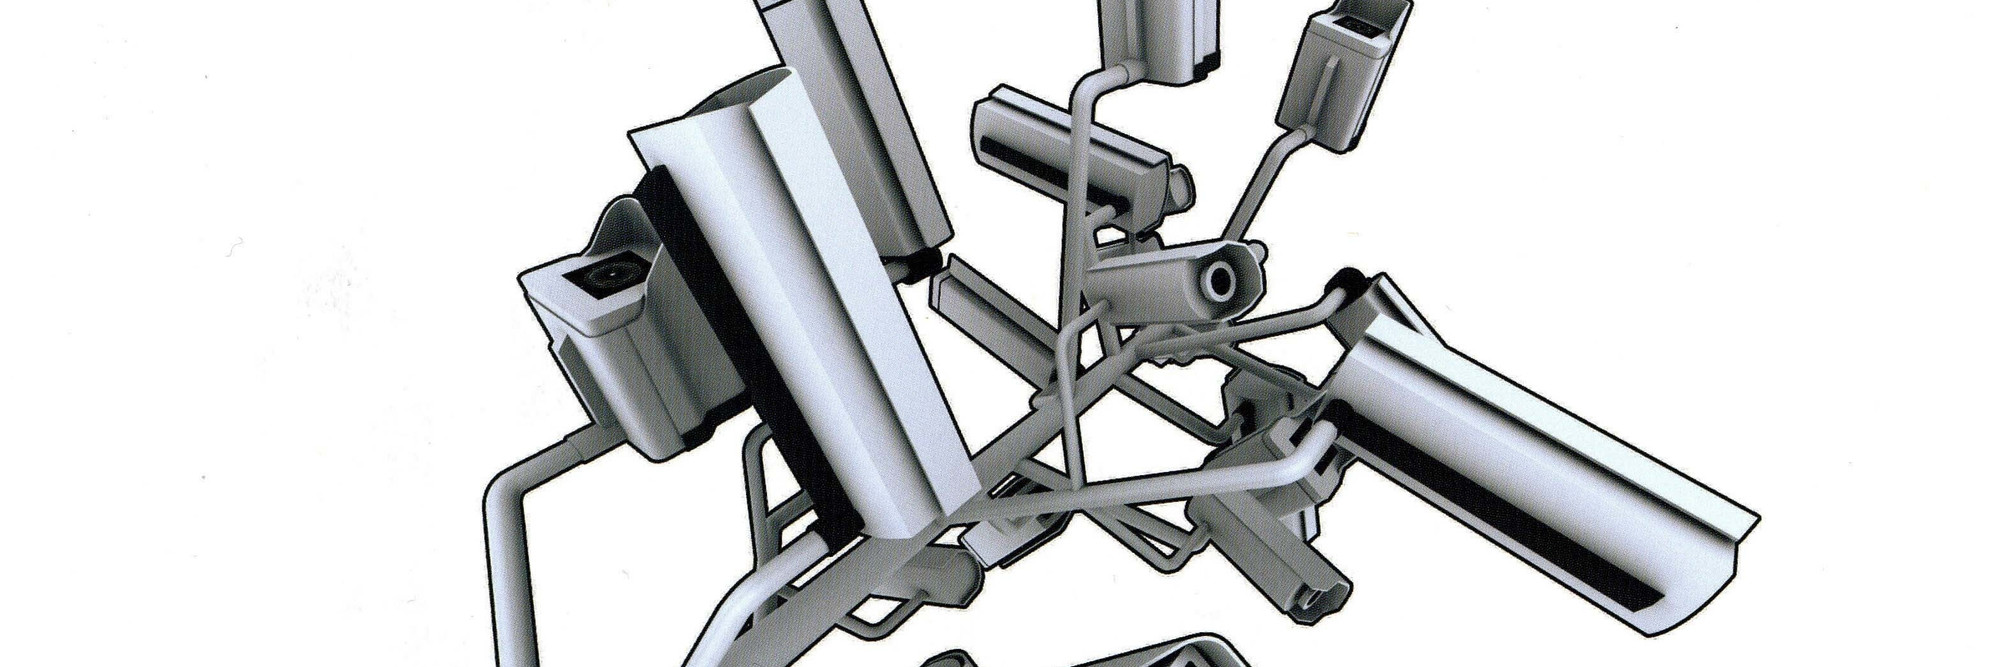 Raúl Cárdenas Osuna. Securitree transmitter. Prototype. 2004. Steel, 24″ × 57″ × 7′3″ (61 × 144.8 × 221 cm). Prototype by Bernardo Gutiérrez and Ana Martínez, Mexico (2004). Torolab and OMR Gallery. Photo: Raúl Cárdenas Osuna and Shijune Takeda